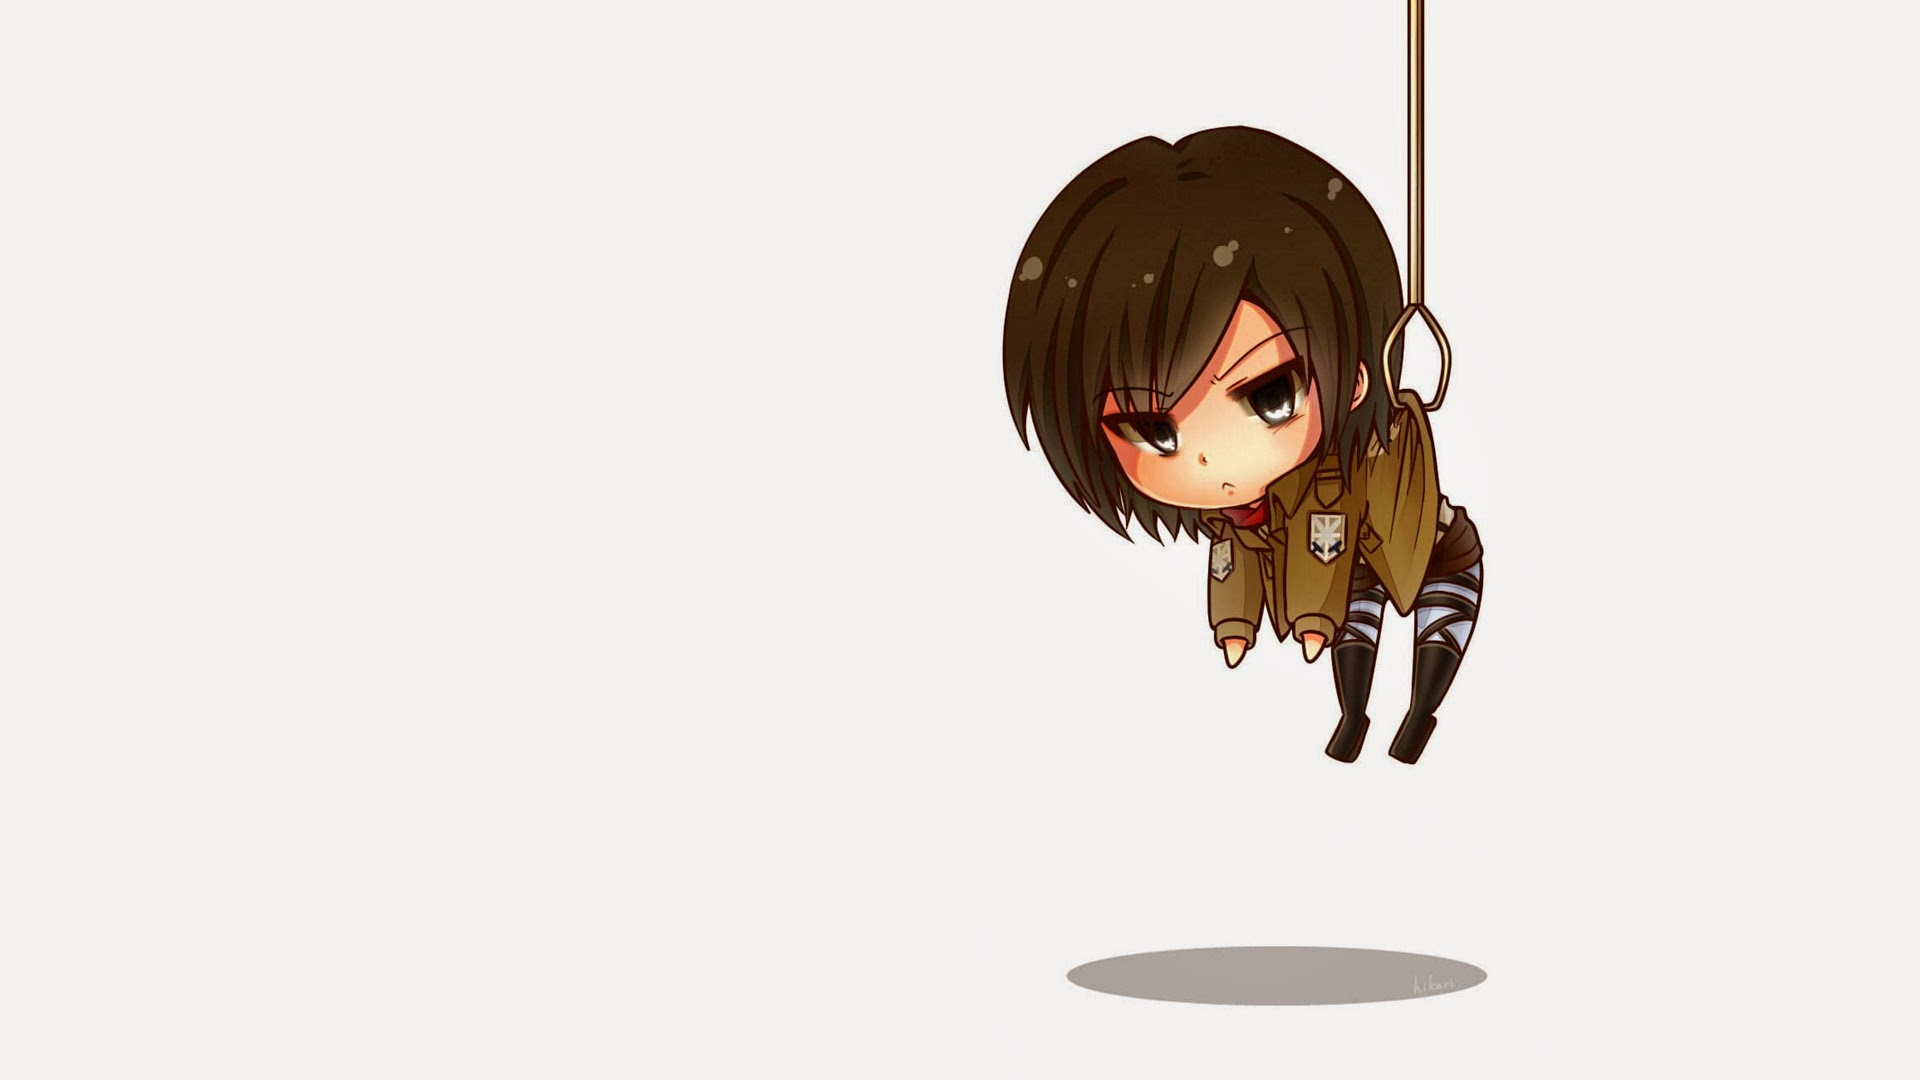 Mikasa Ackerman Chibi Anime Girl 7w Wallpaper HD 1920x1080